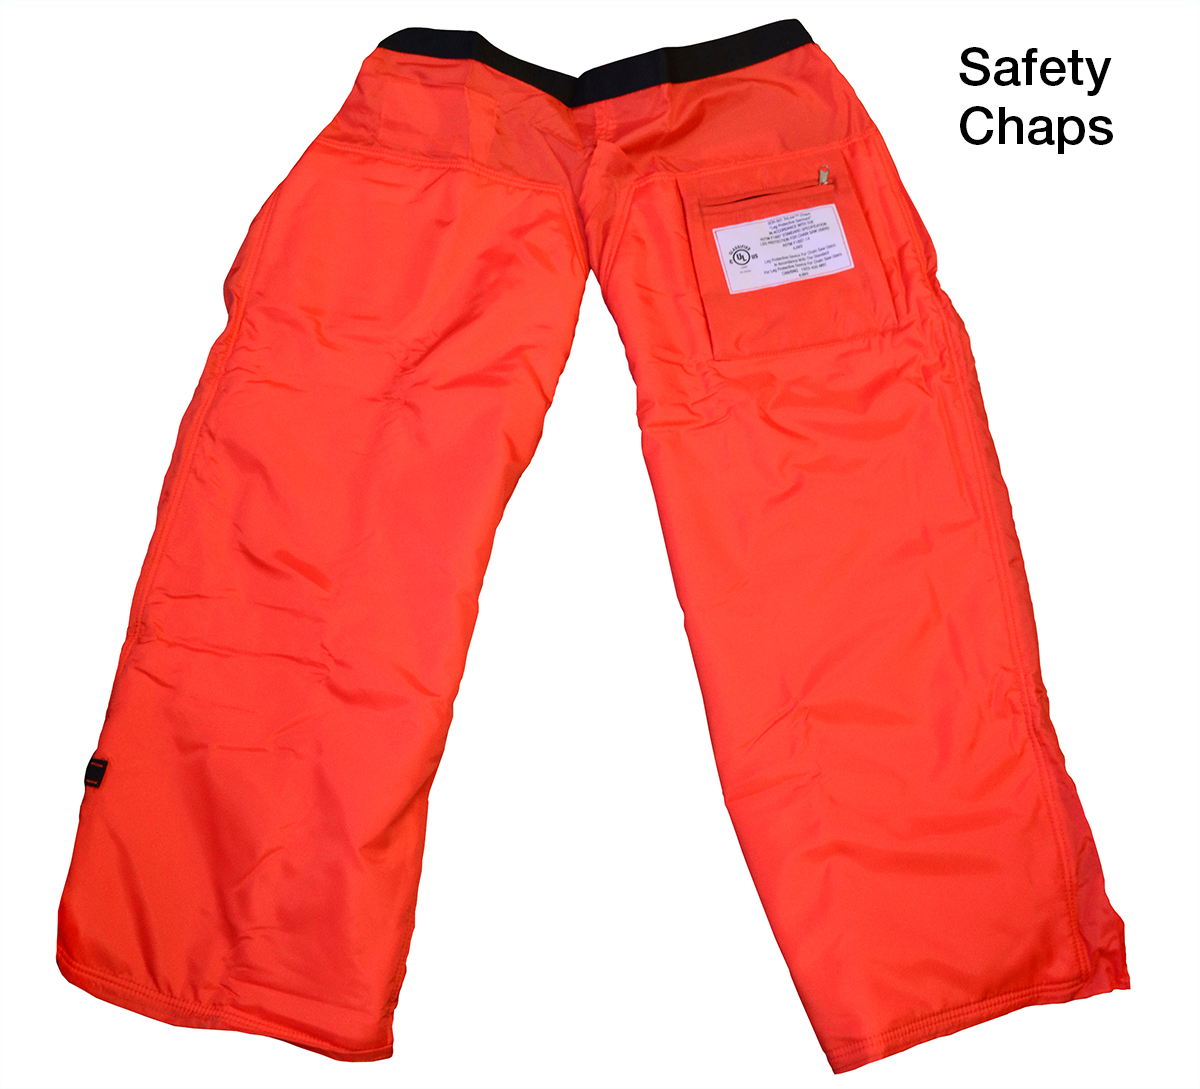 Safety Chaps